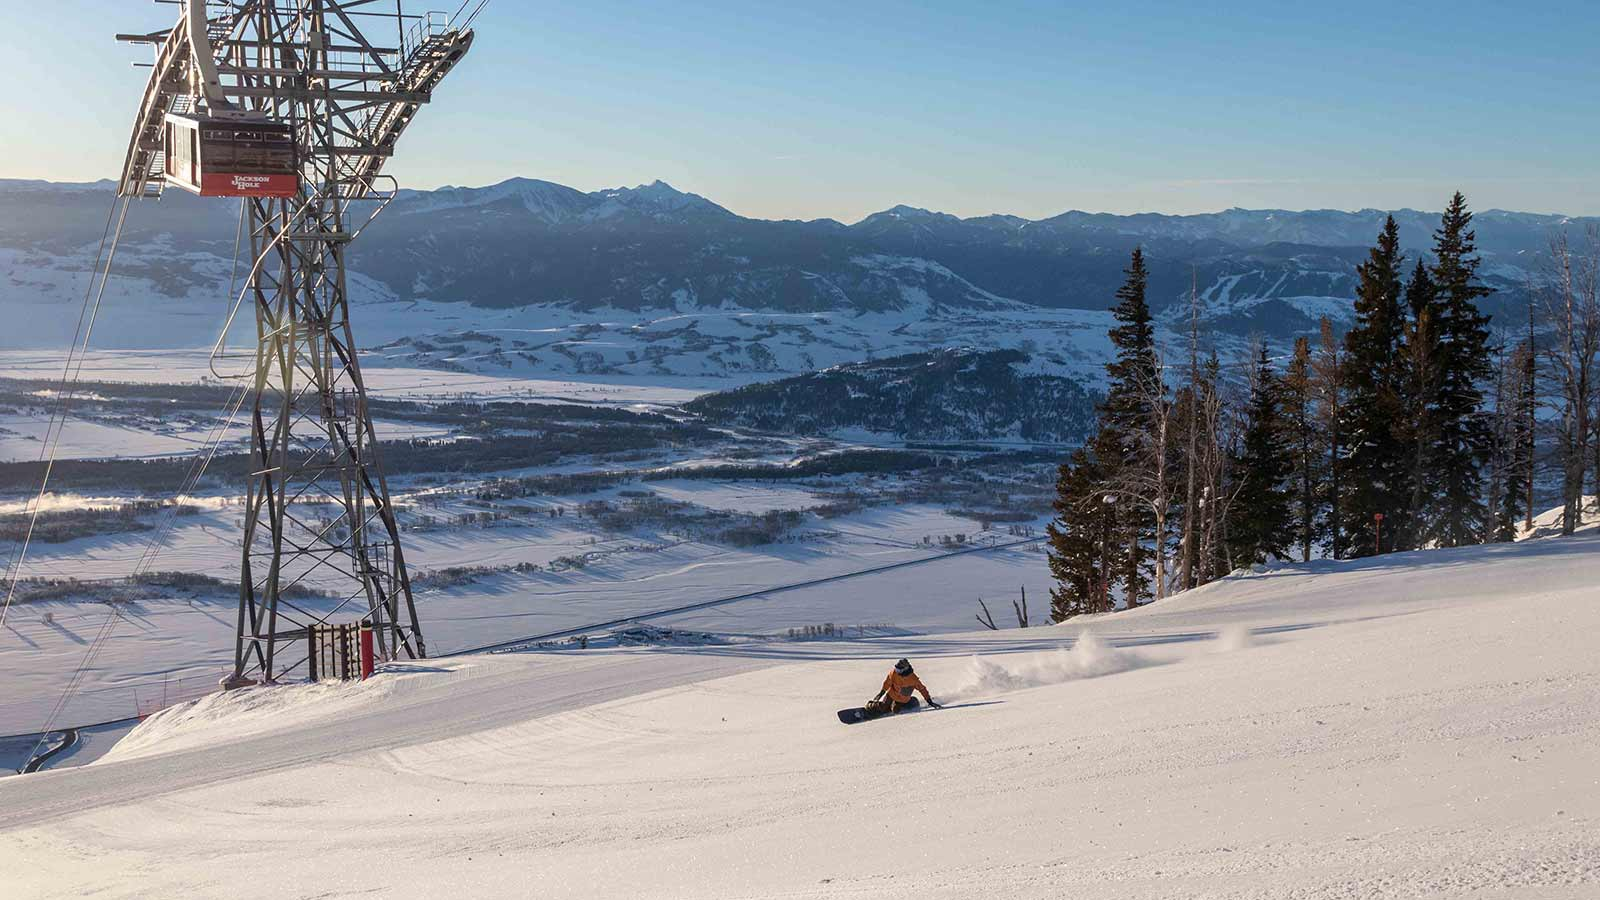 Jackson Hole Ski Resort, USA - Snowboarding